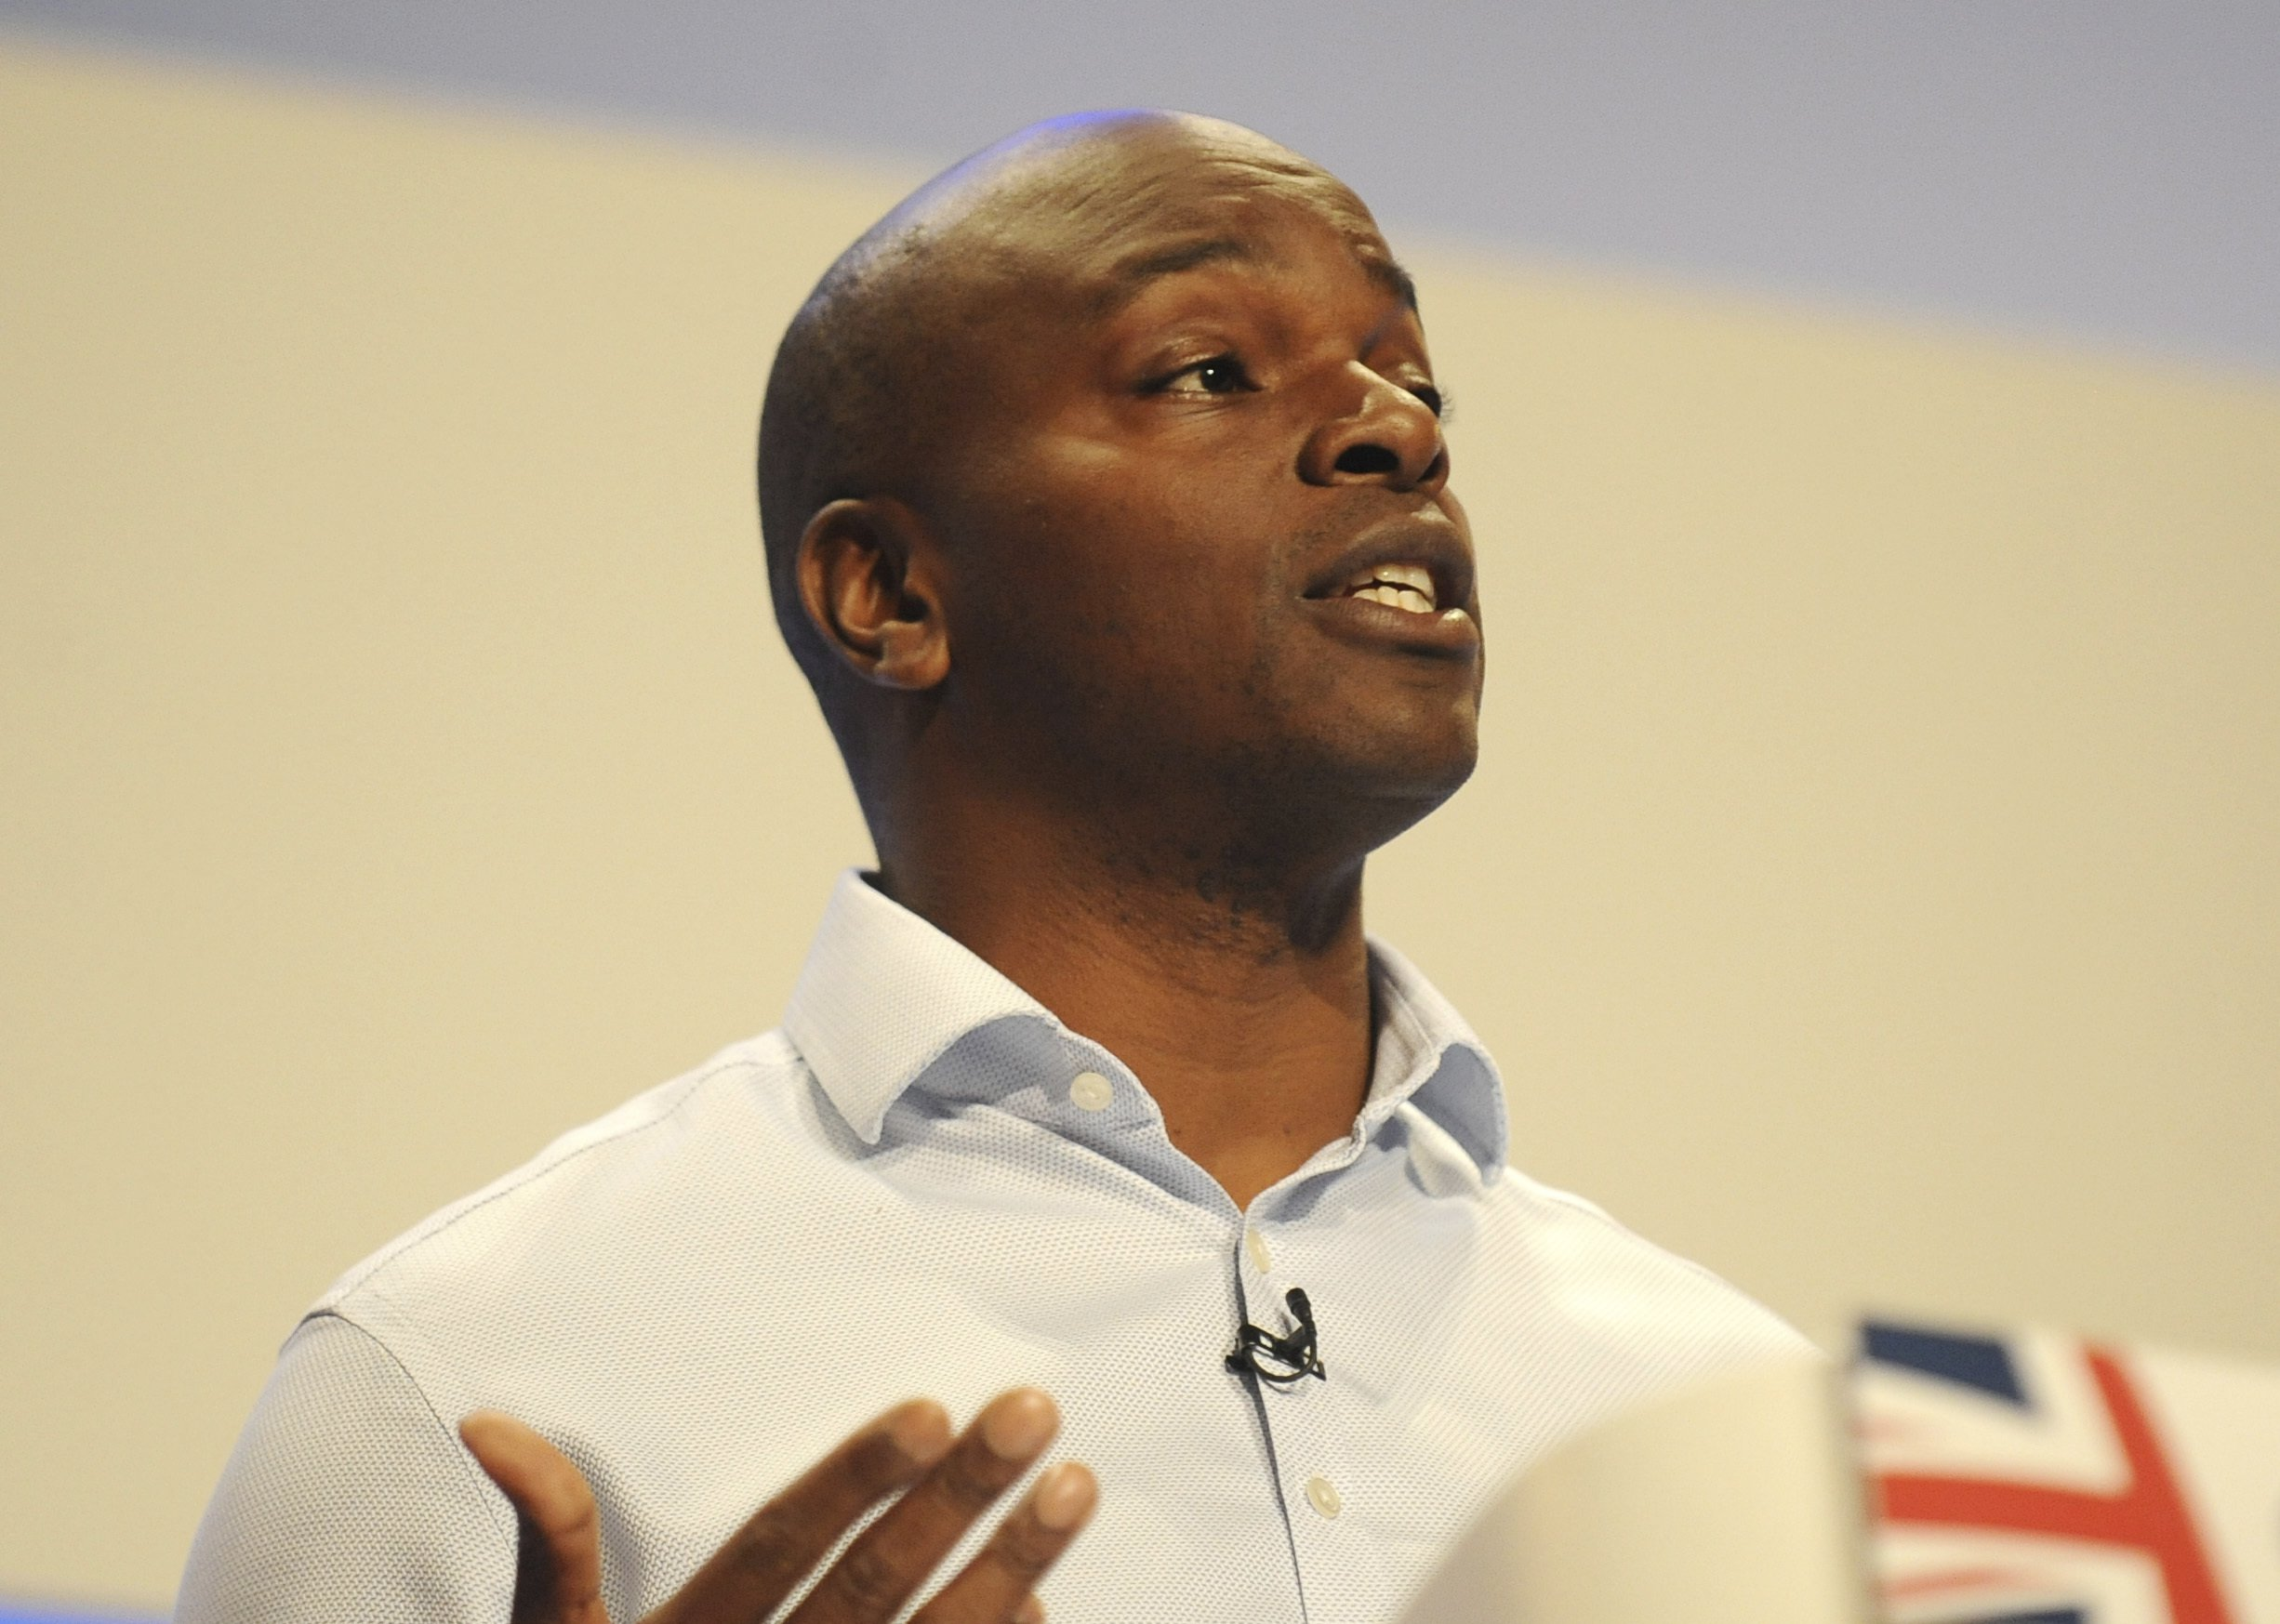 Tory candidate for Mayor of London Shaun Bailey speaks during the final day of the Conservative Party Conference at the ICC, in Birmingham, England, Wednesday, Oct. 3 , 2018. (AP Photo/Rui Vieira)